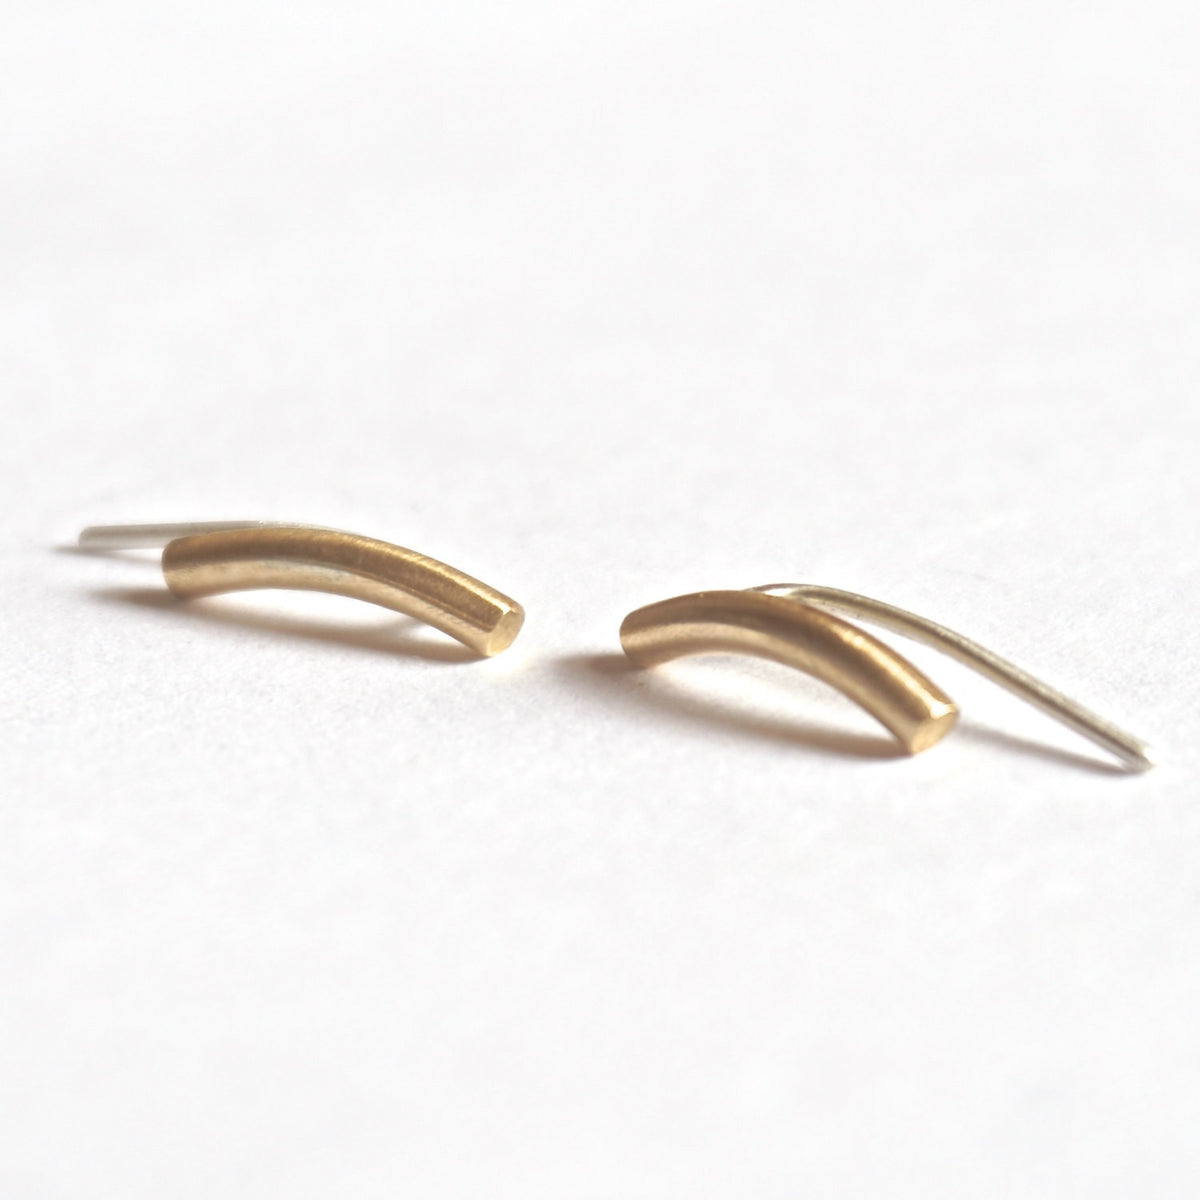 12mm Small Ear Climber Earrings 0176